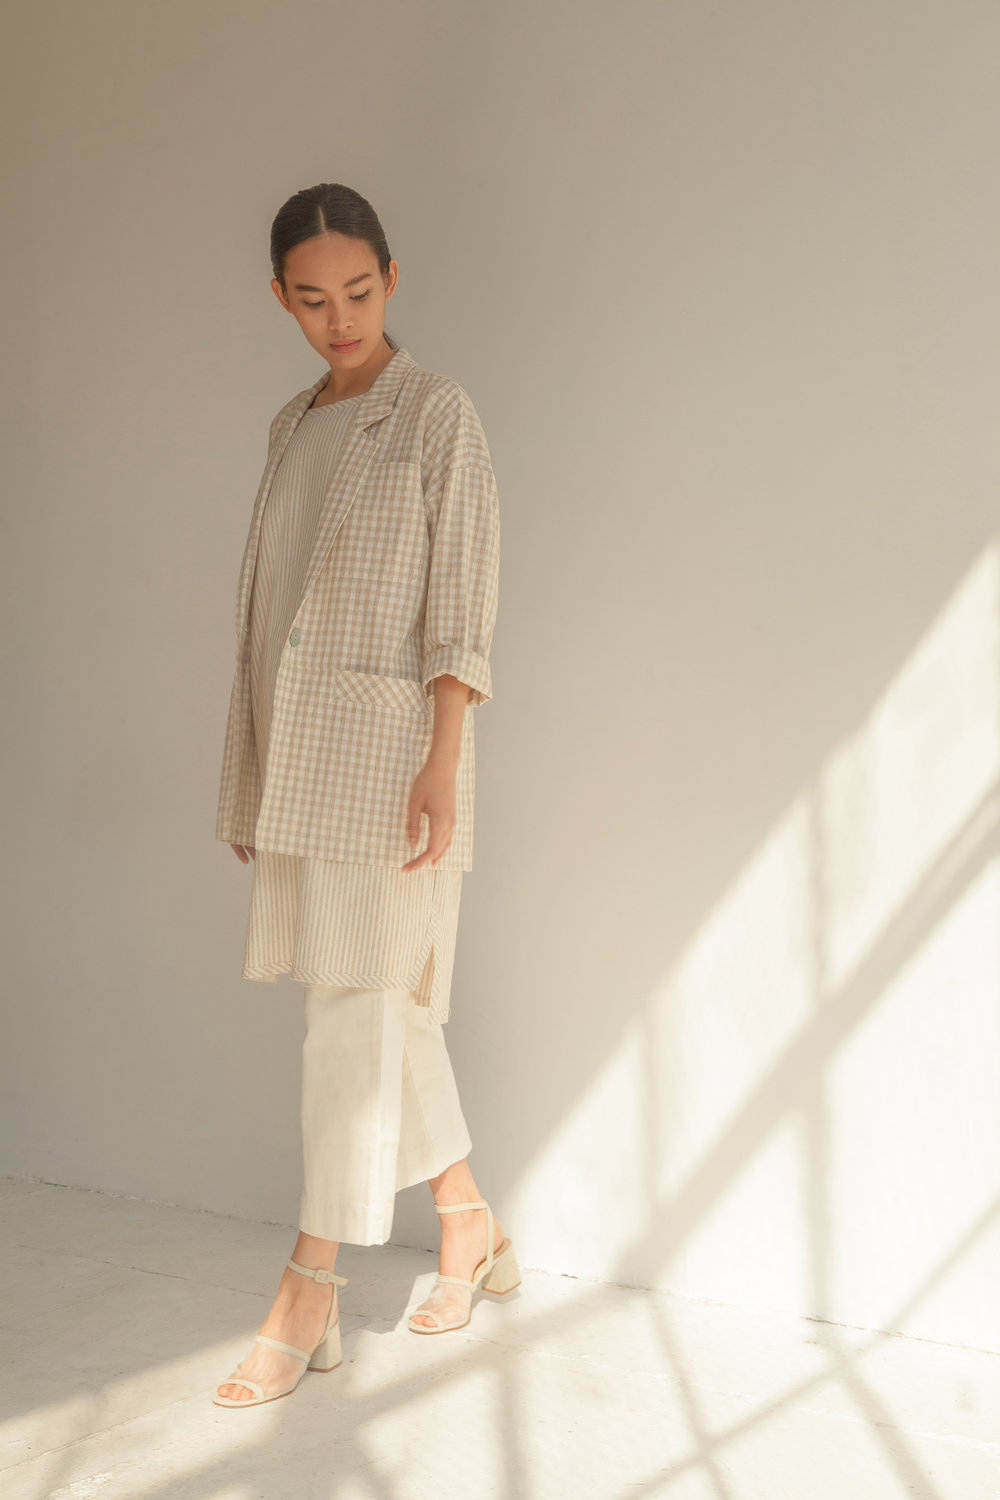 HouseDress_SS19_Lookbook_Look2_8300.jpg